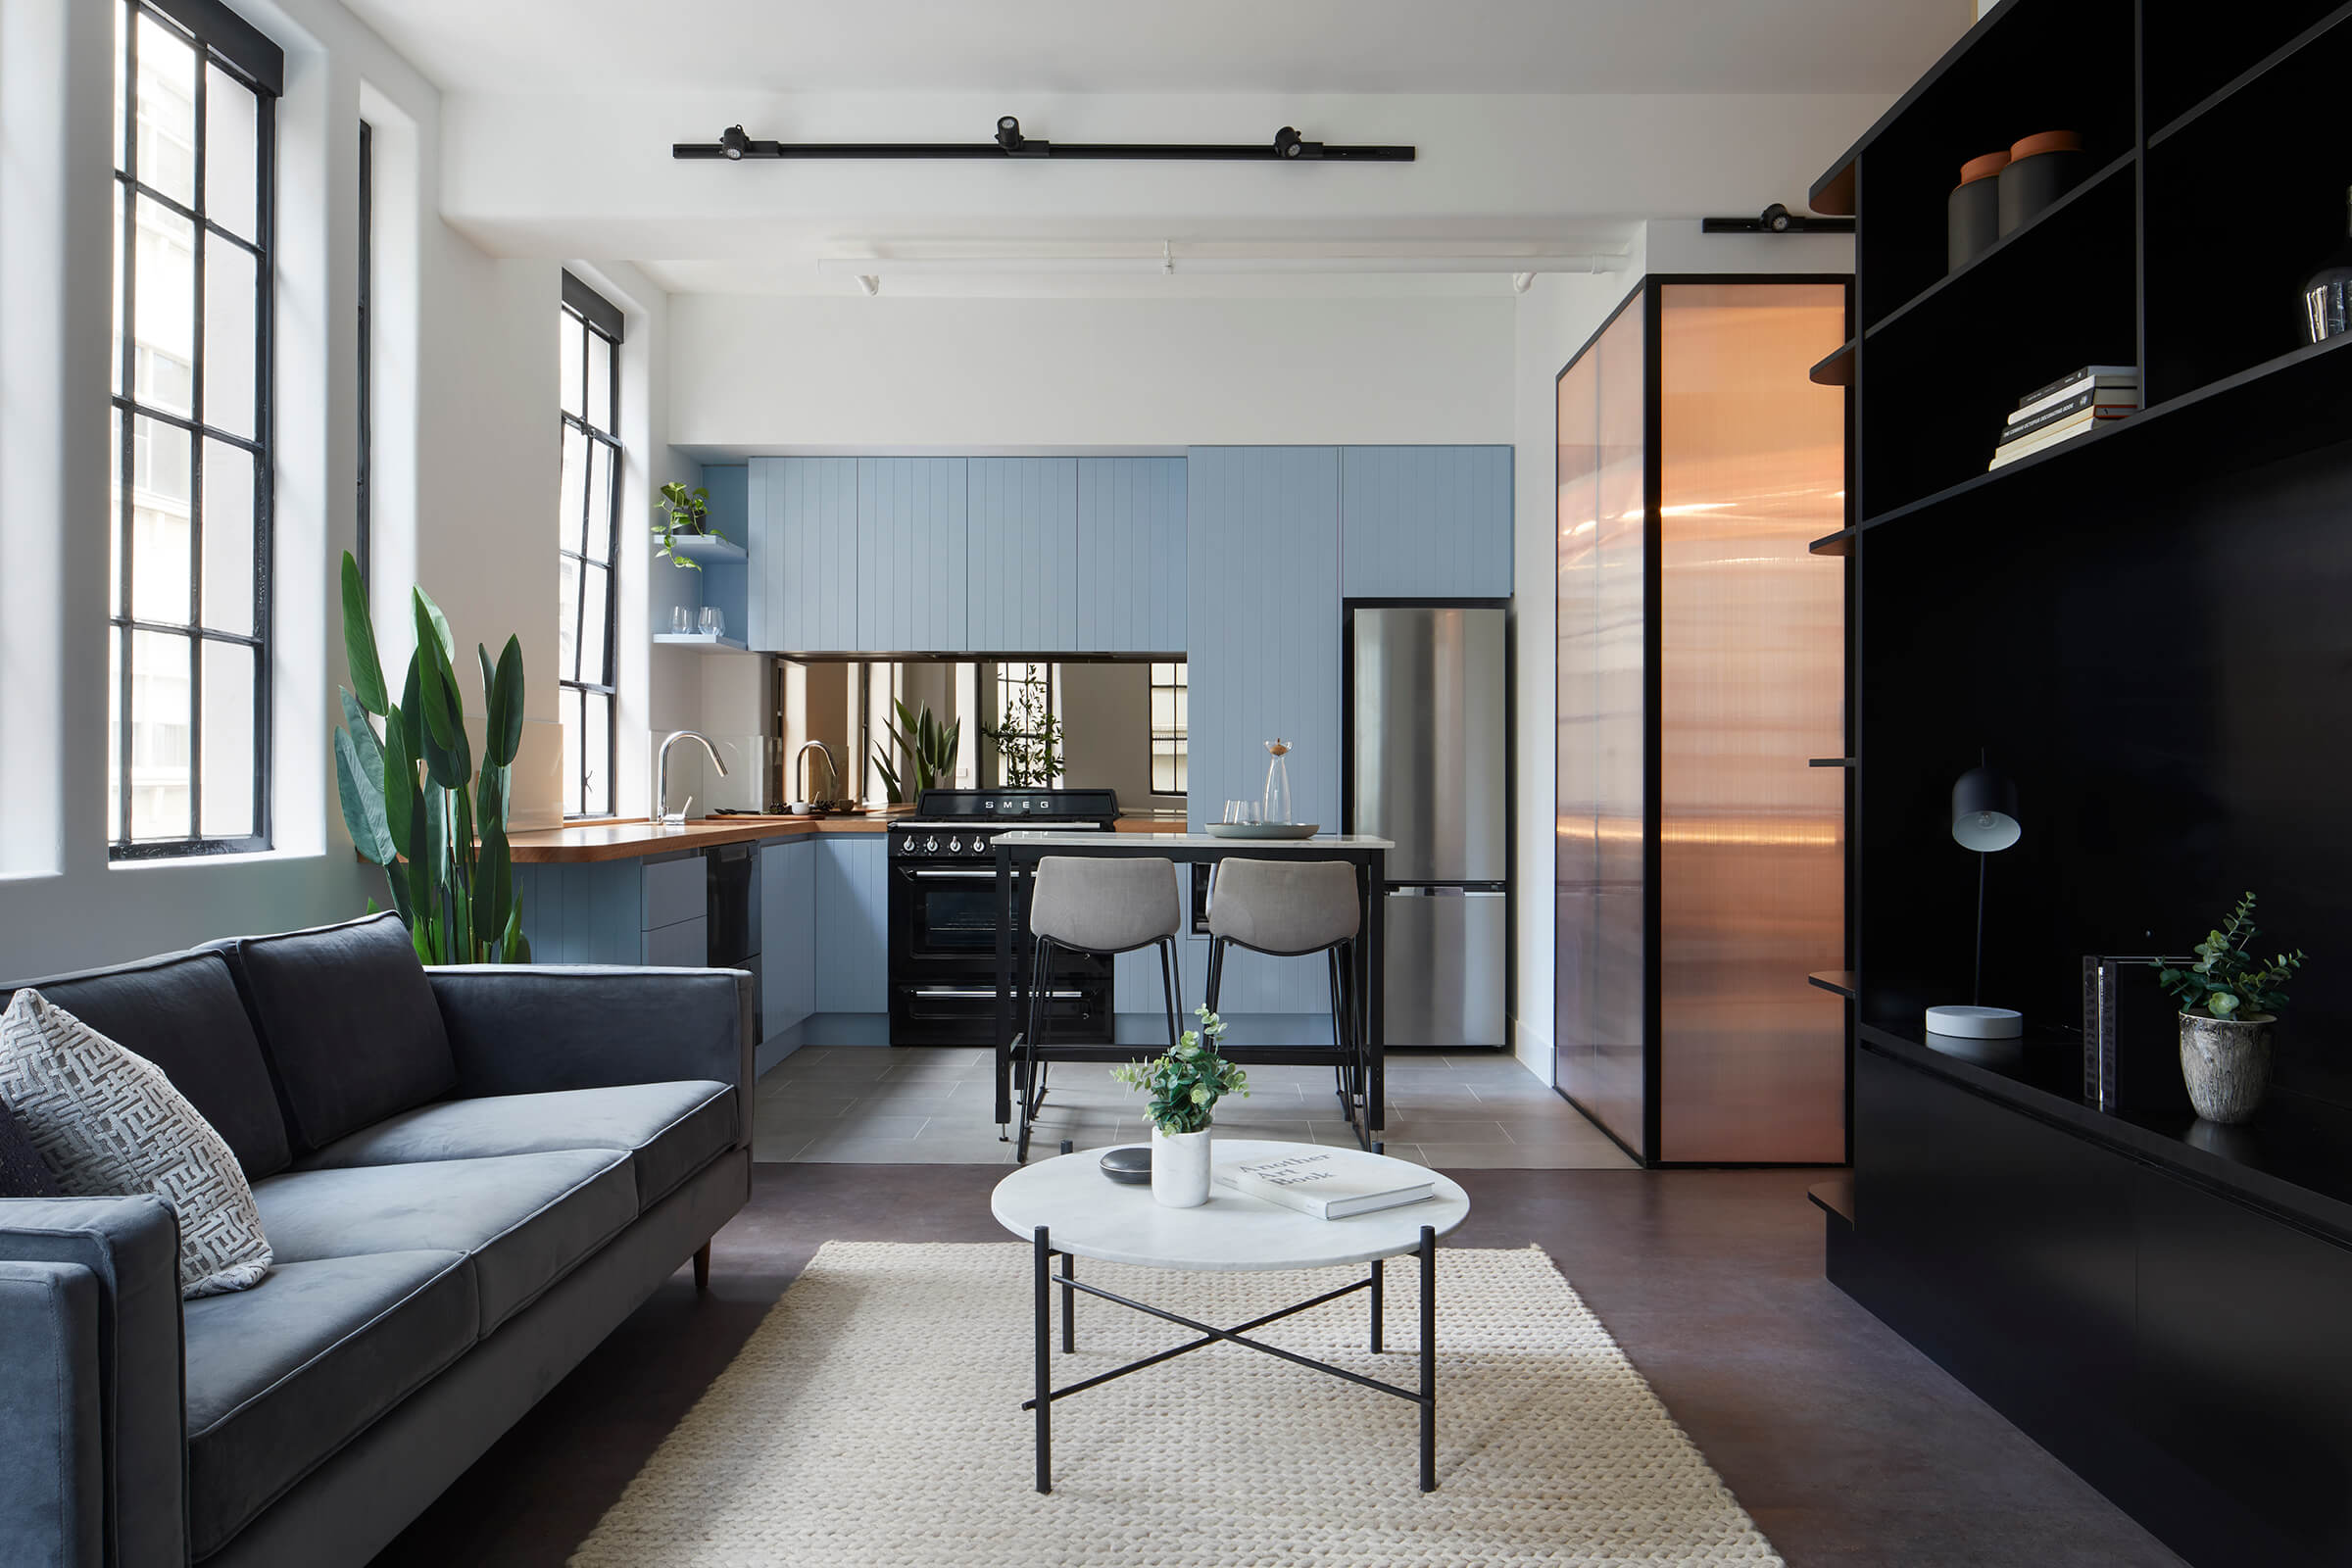 Lt. Collins Apartment by de.arch